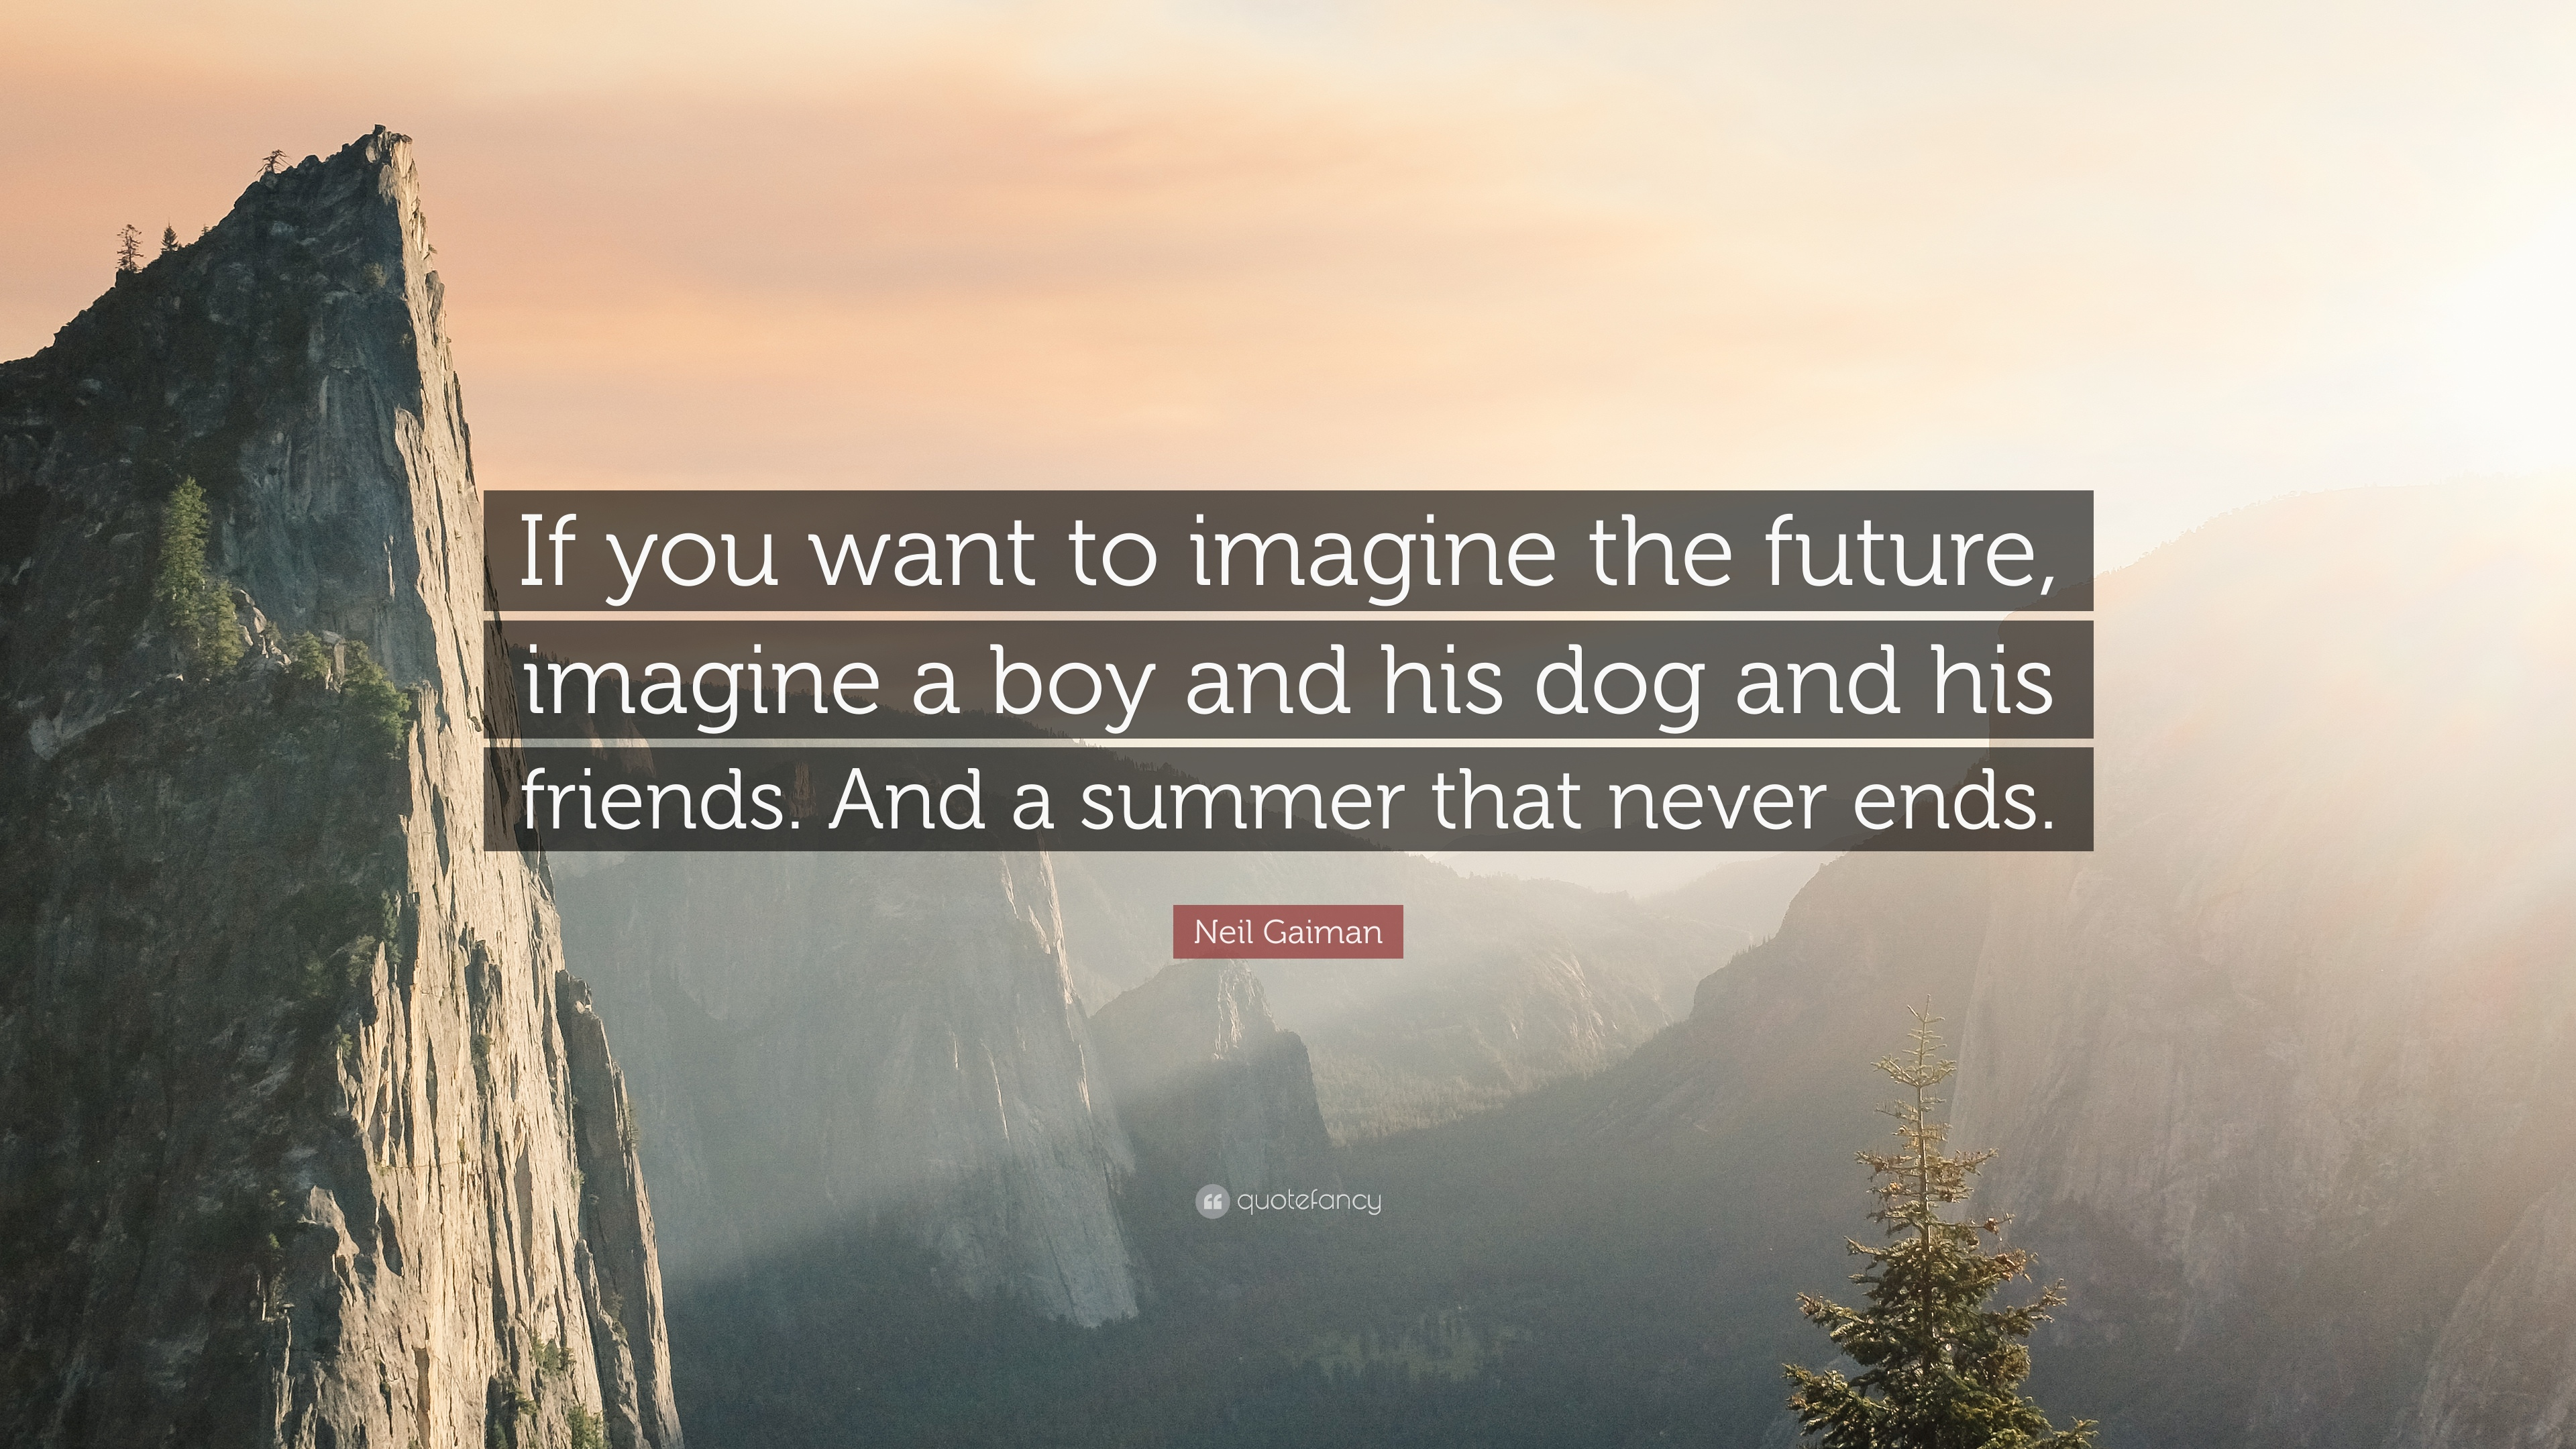 Neil Gaiman Quote If You Want To Imagine The Future Imagine A Boy